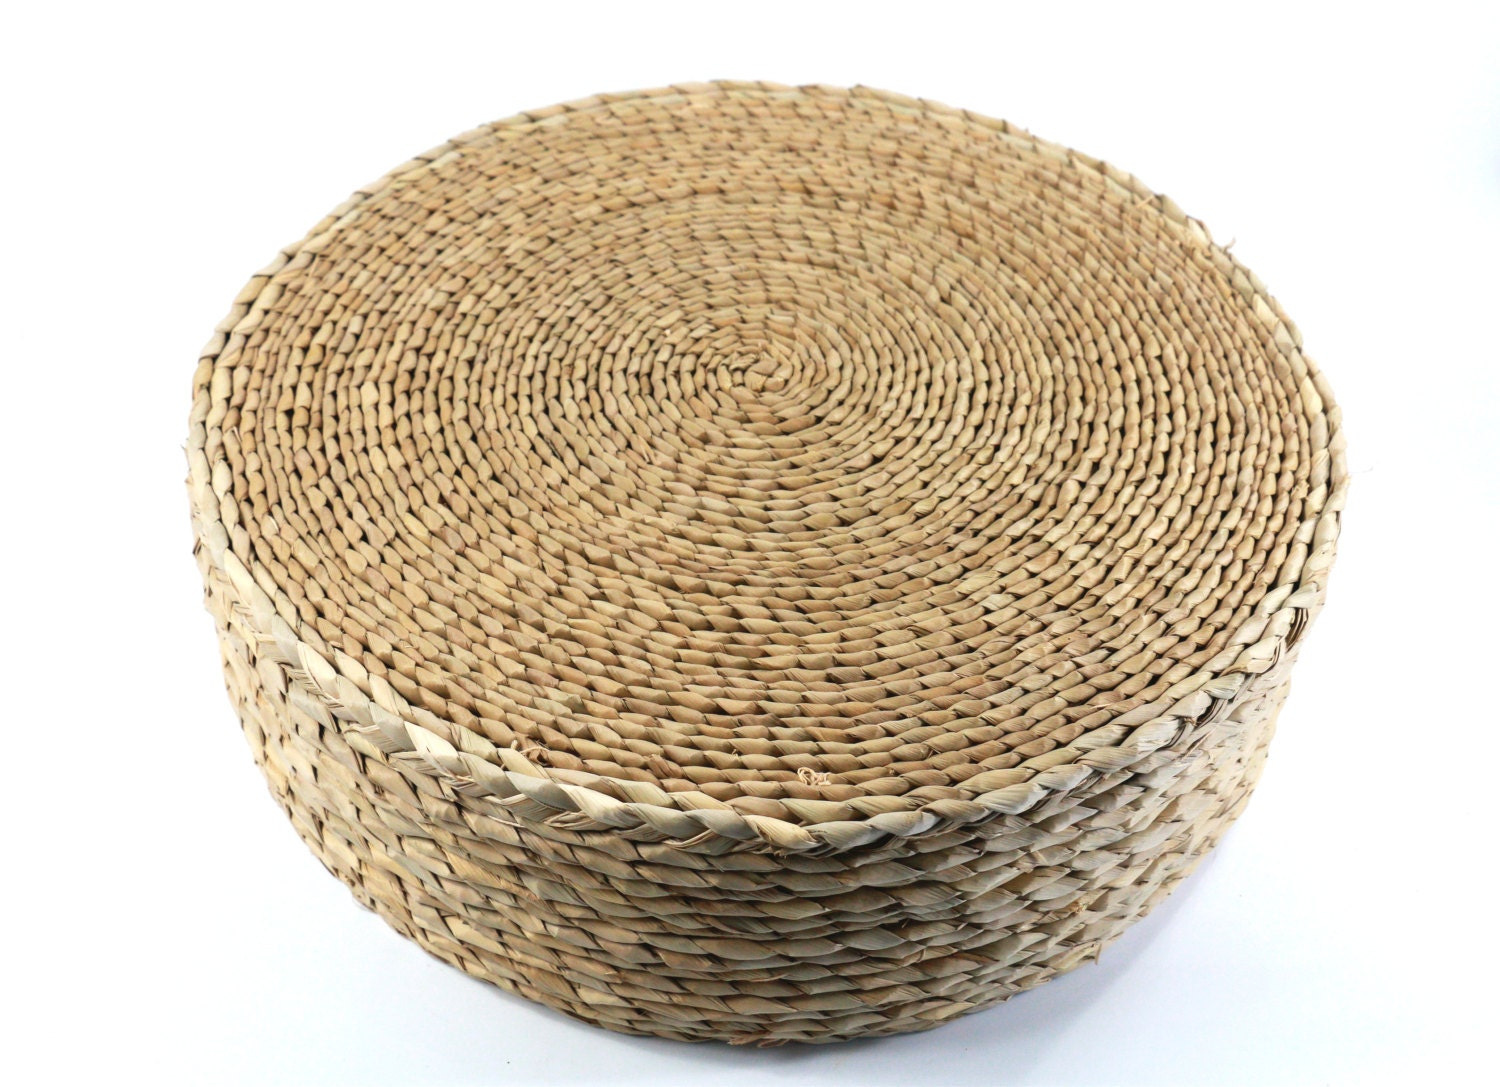 Round Straw Floor Pillows : Straw round rustic floor cushion/ gift for by GrasShanghai on Etsy